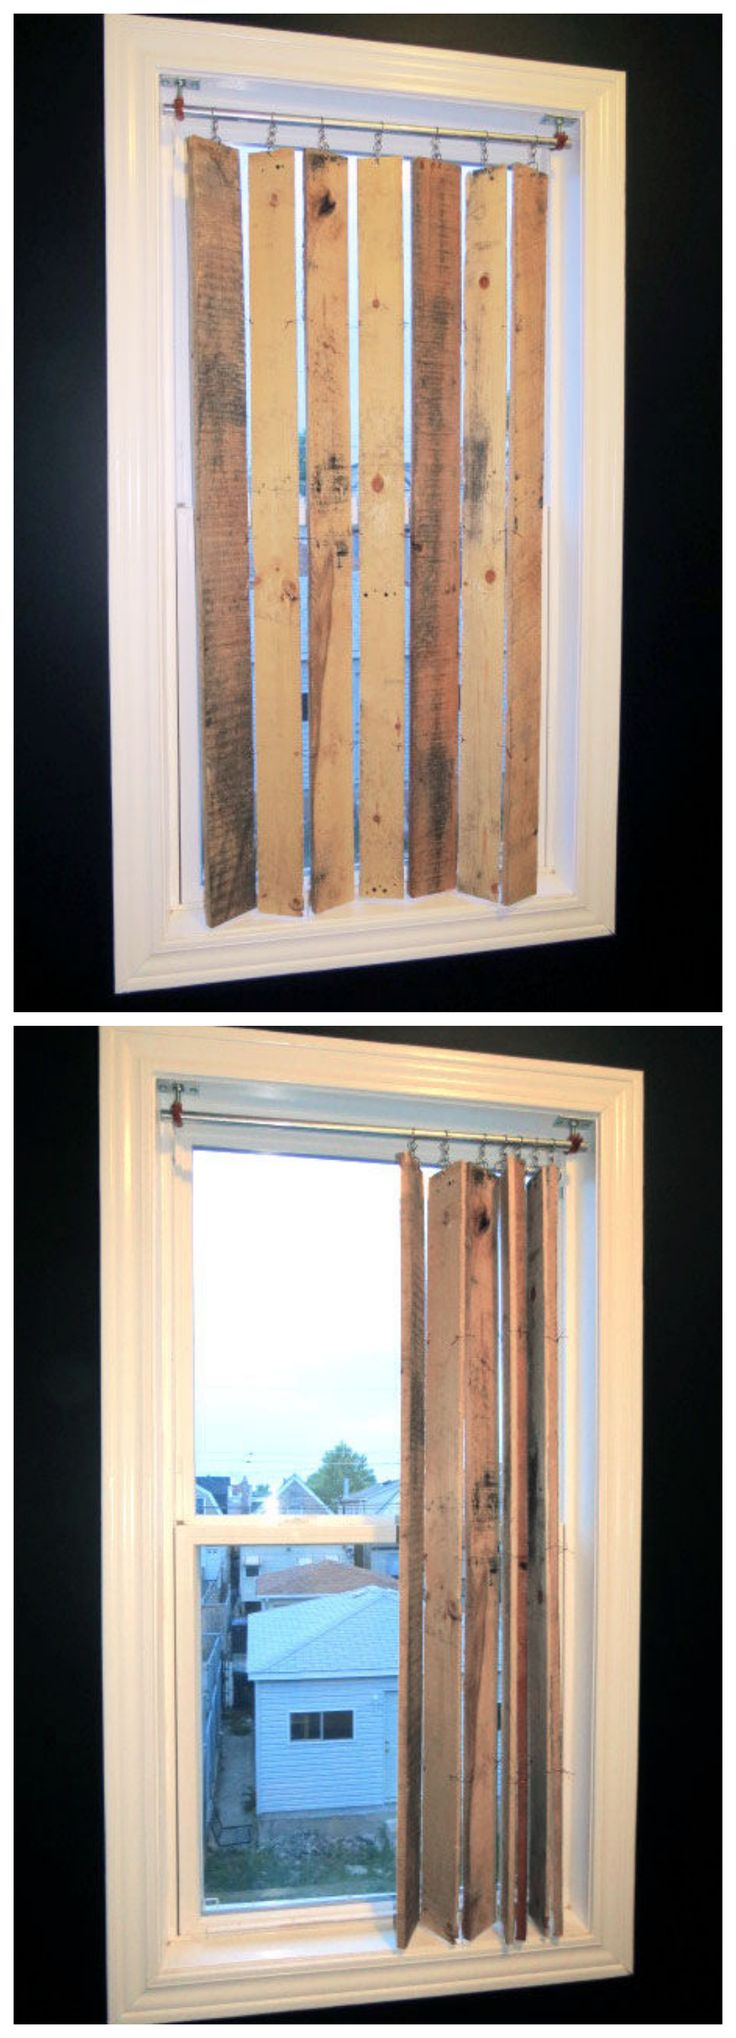 DIY Pallet Wood Vertical Blinds #woodworking #decoration